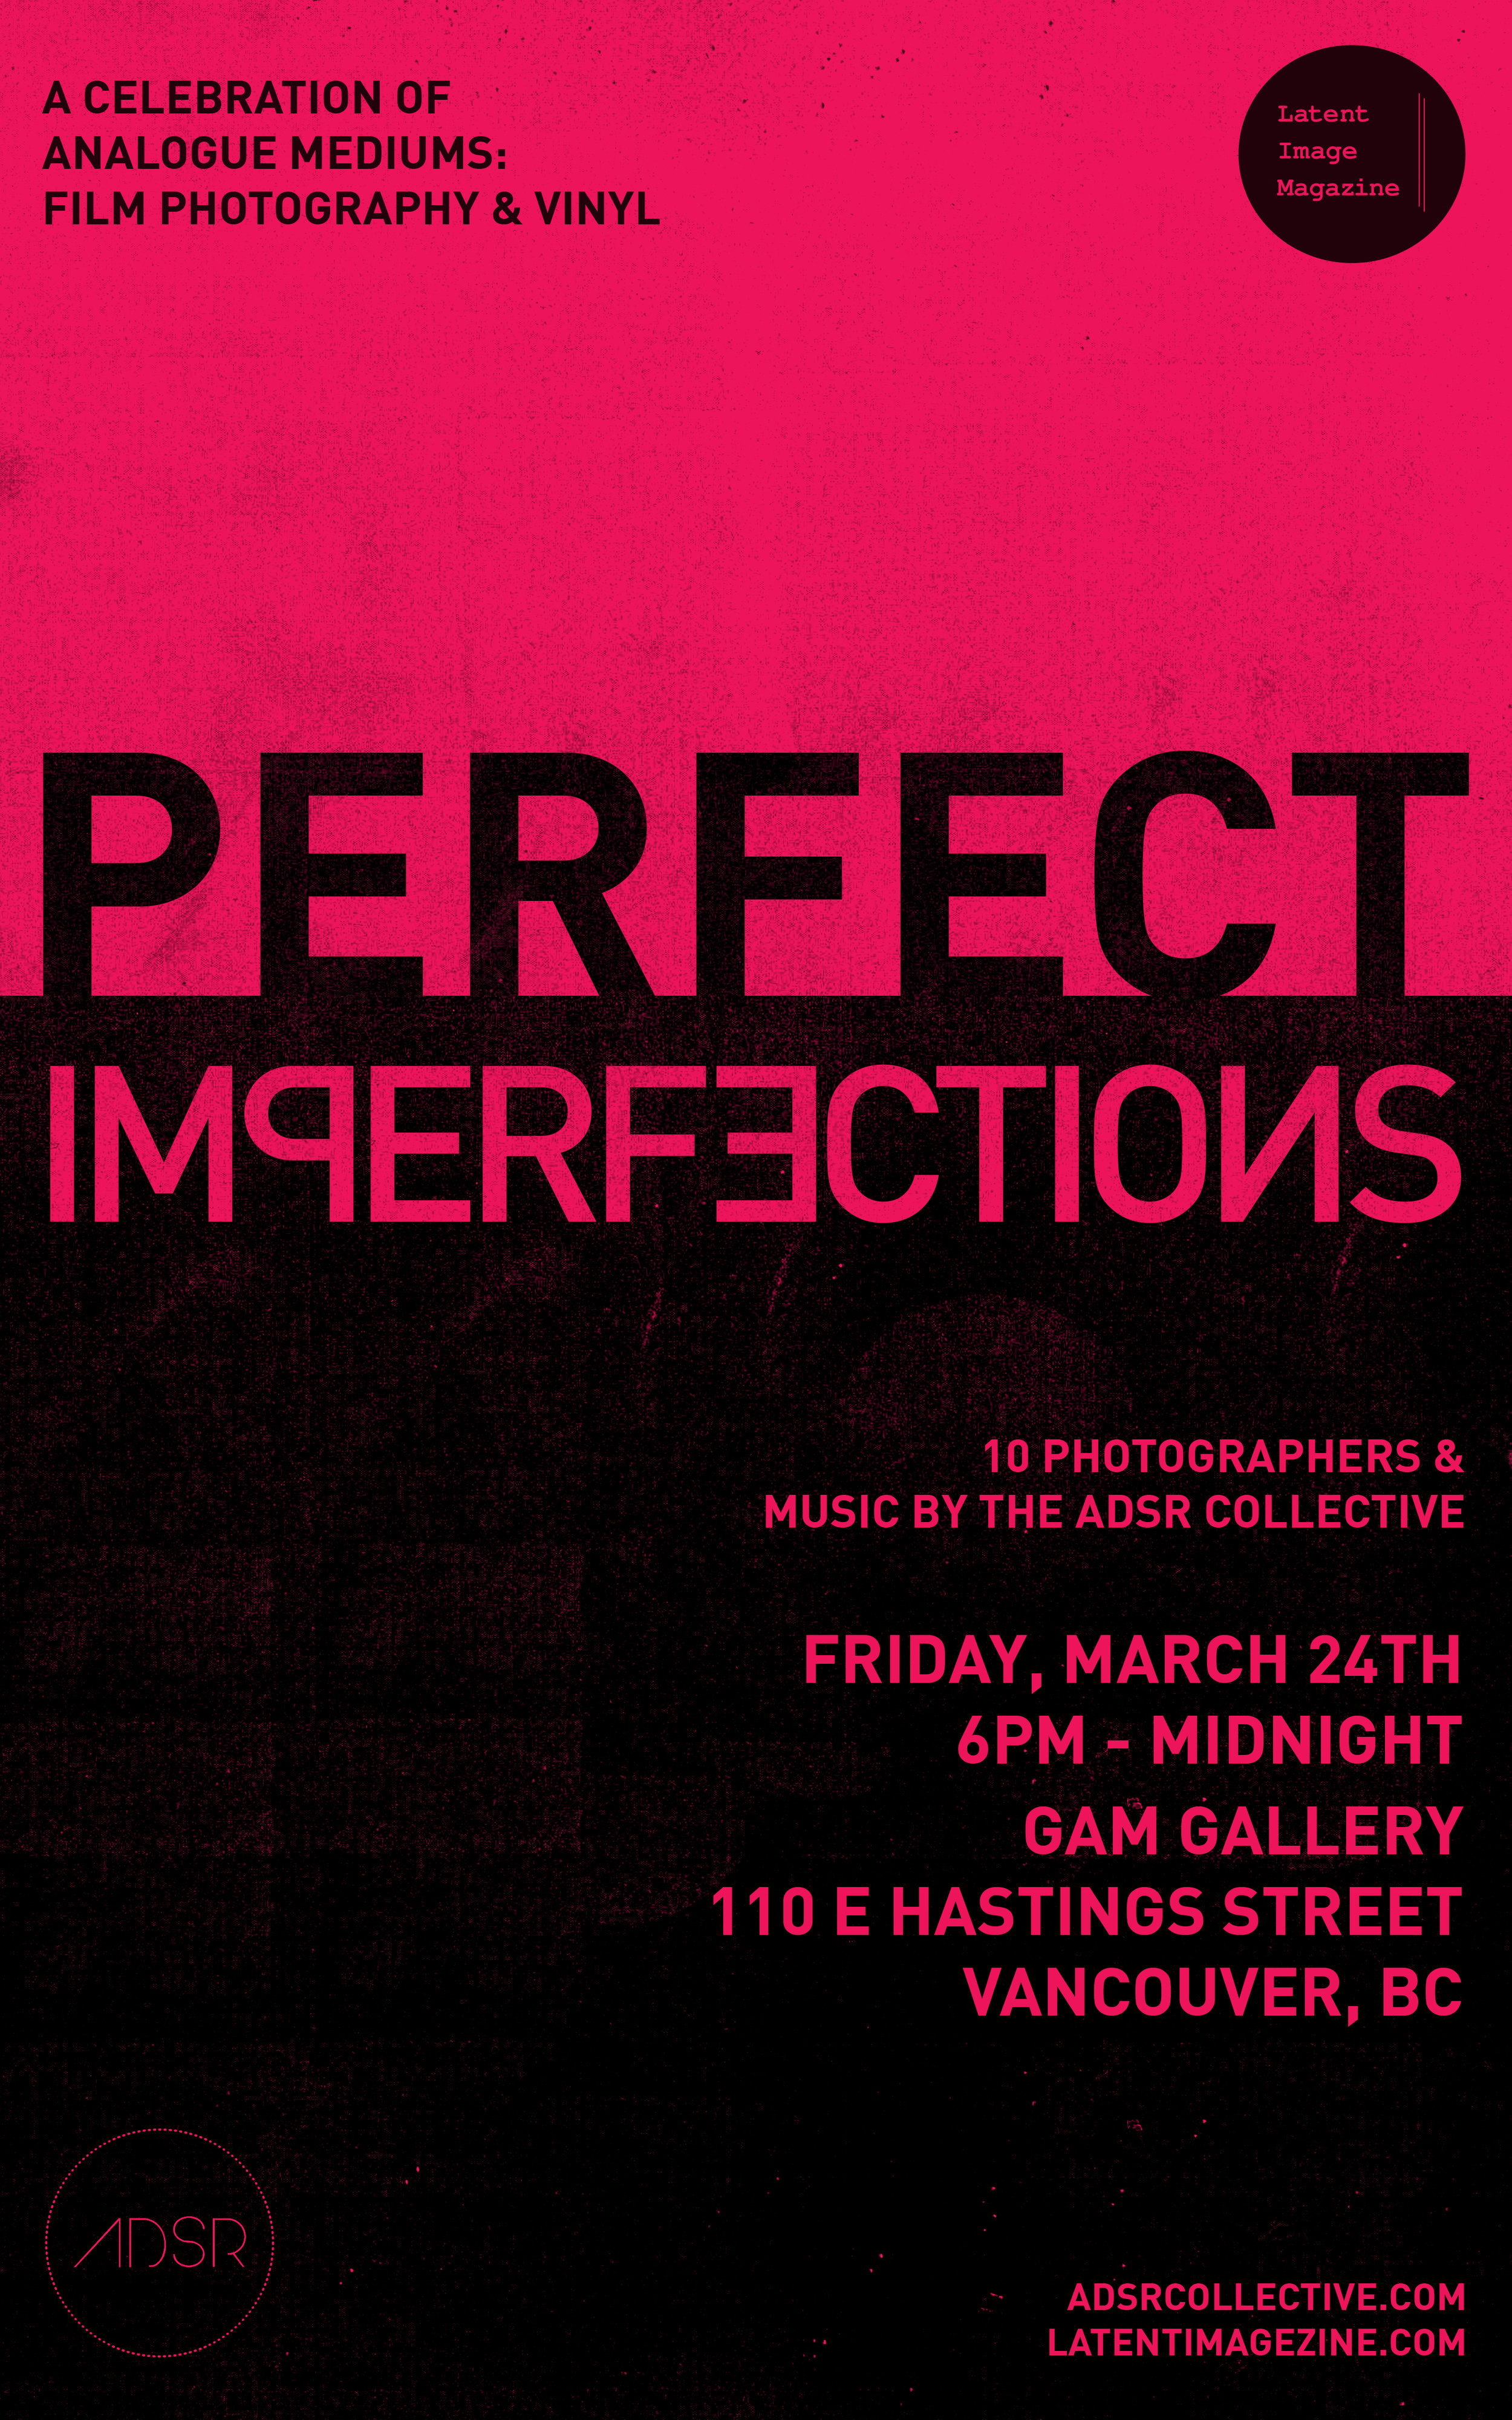 Friday March 20th @ Gam Gallery  110 East Hastings Vancouver BC, Canada